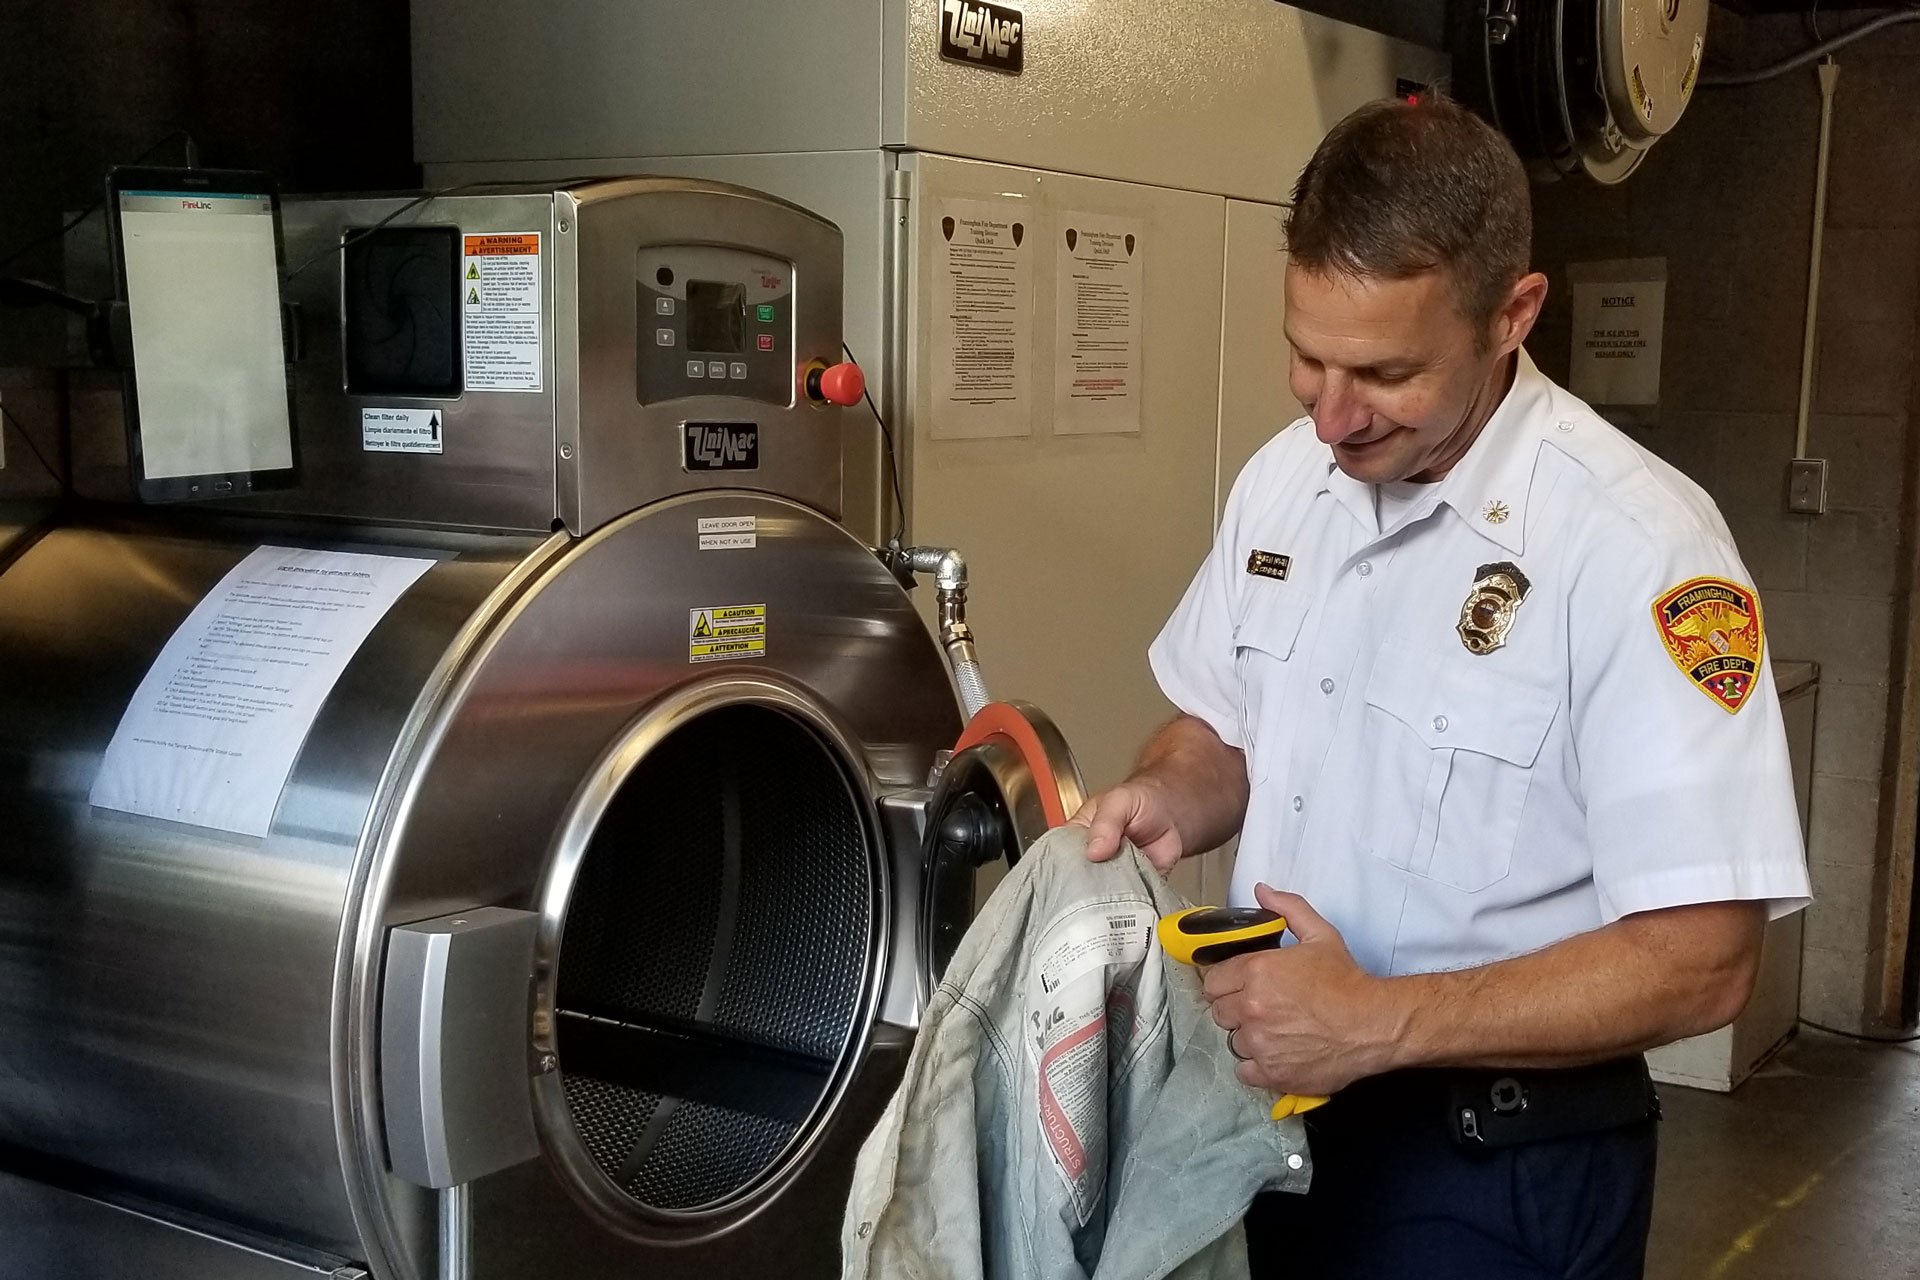 Laundering PPE is paramount for first responders during COVID-19 crisis